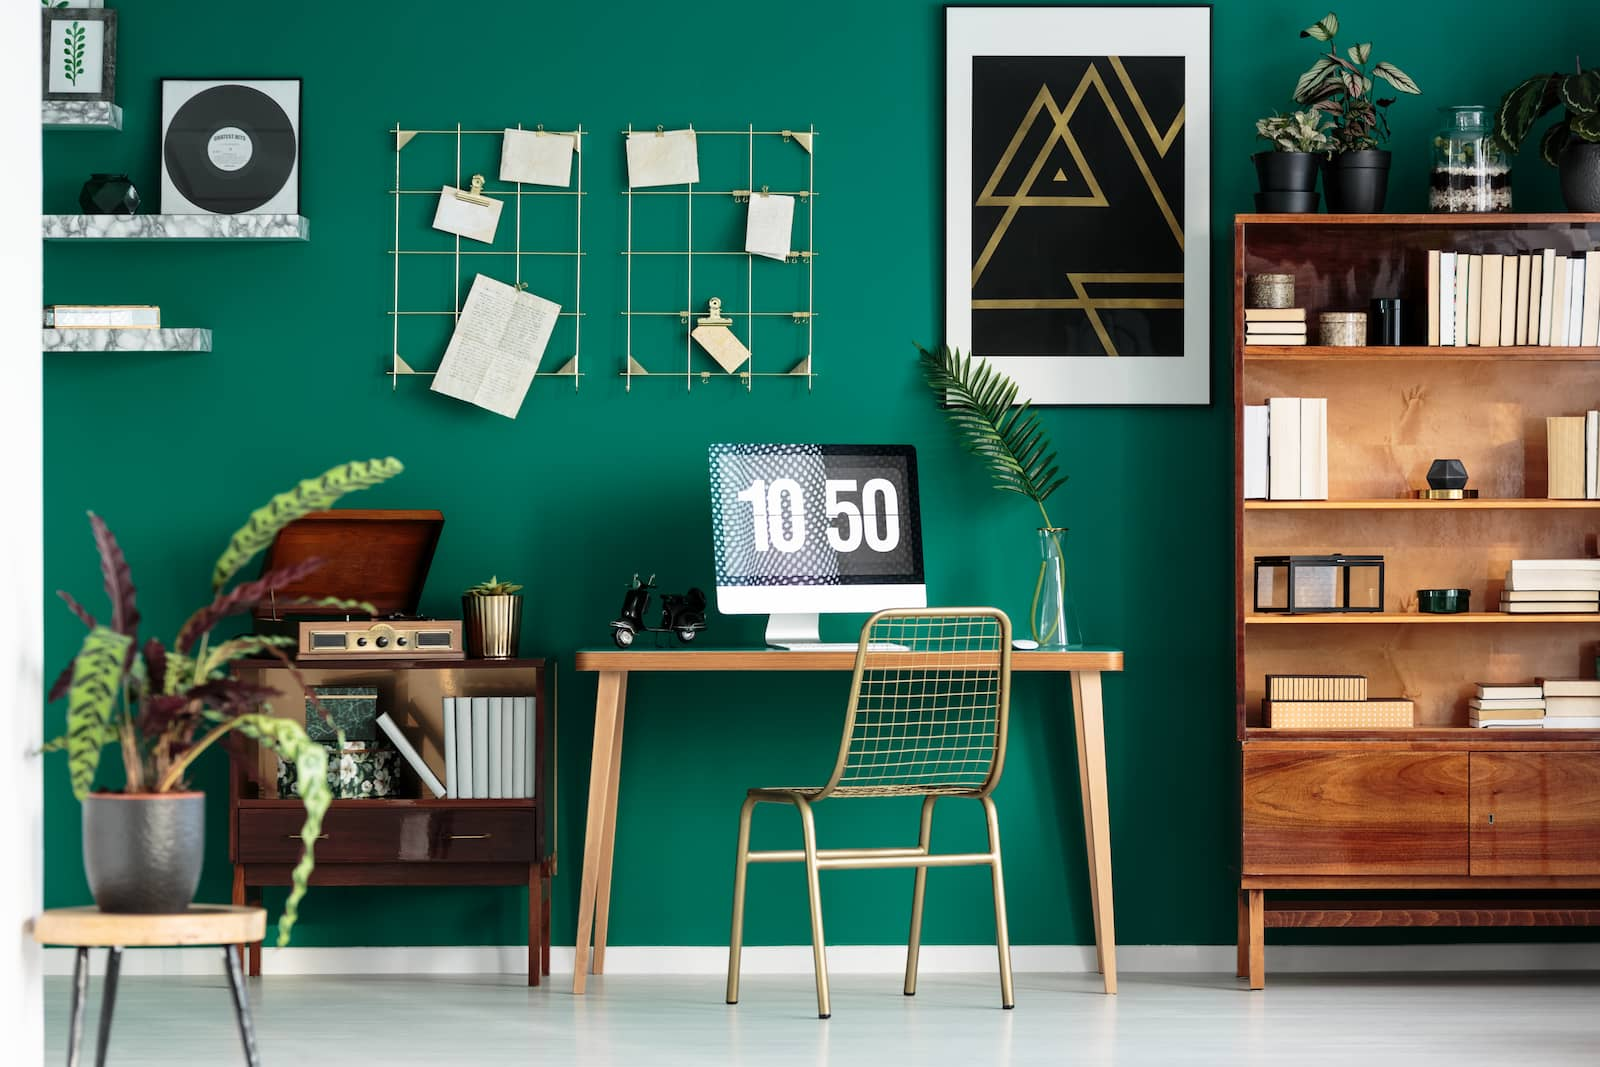 small desk next to green wall and decorations